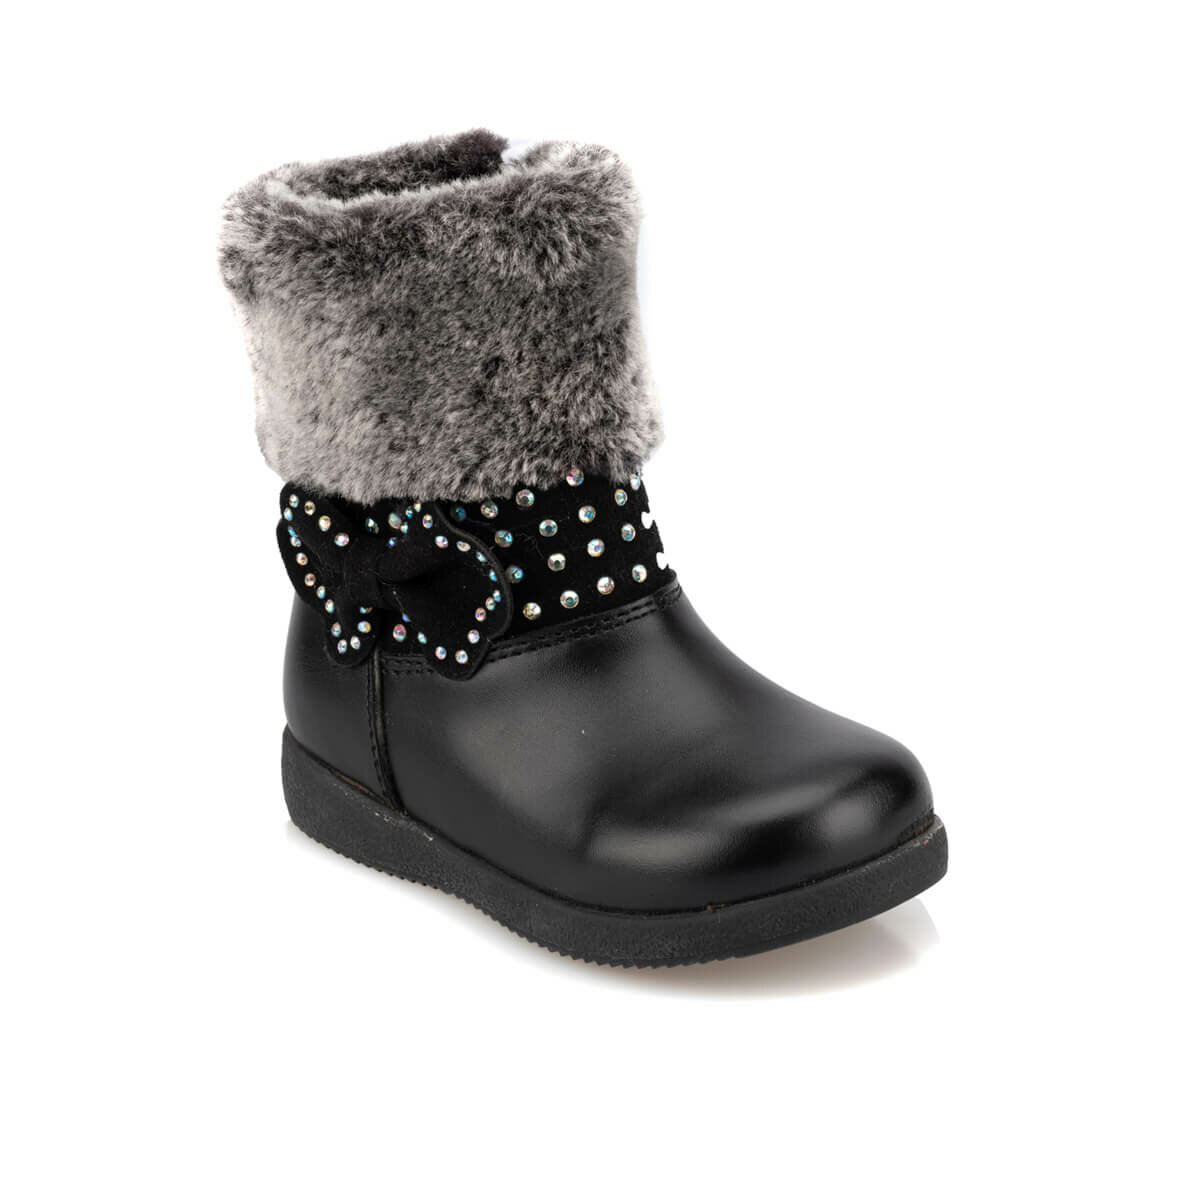 FLO 92.510726.B Black Female Child Boots Polaris